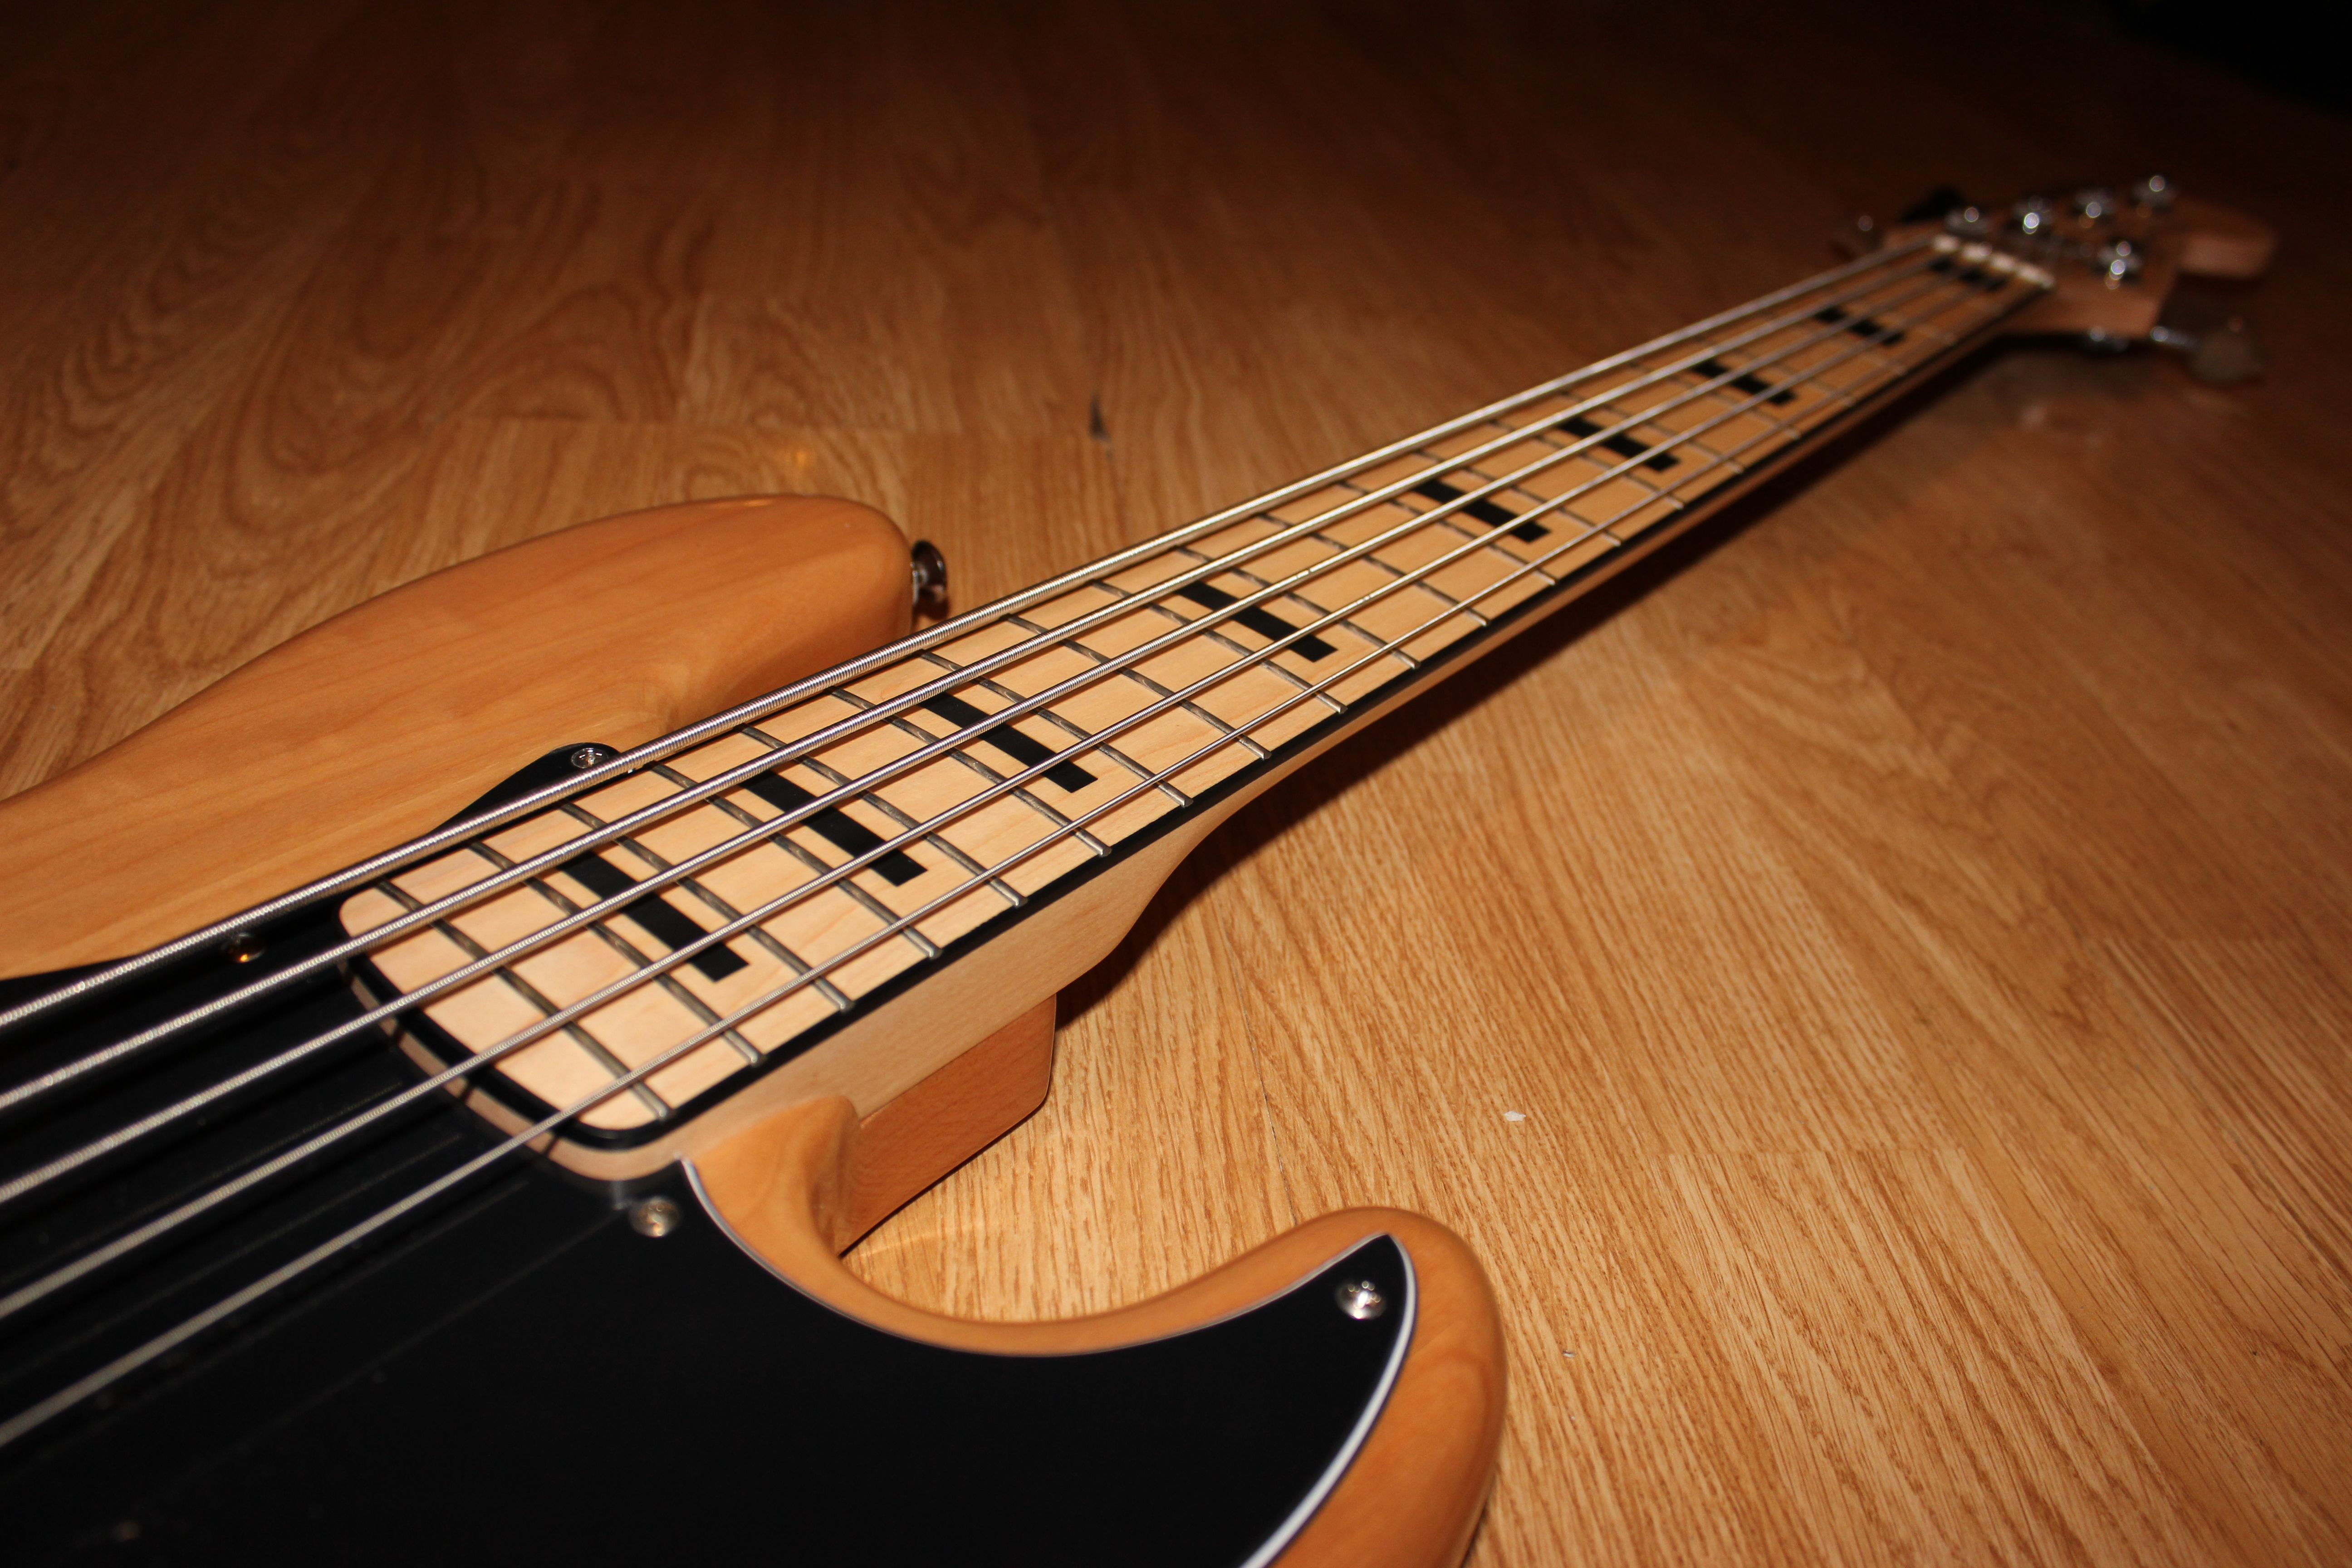 String Bass Guitar Wallpaper Images Pictures   Becuo 5184x3456